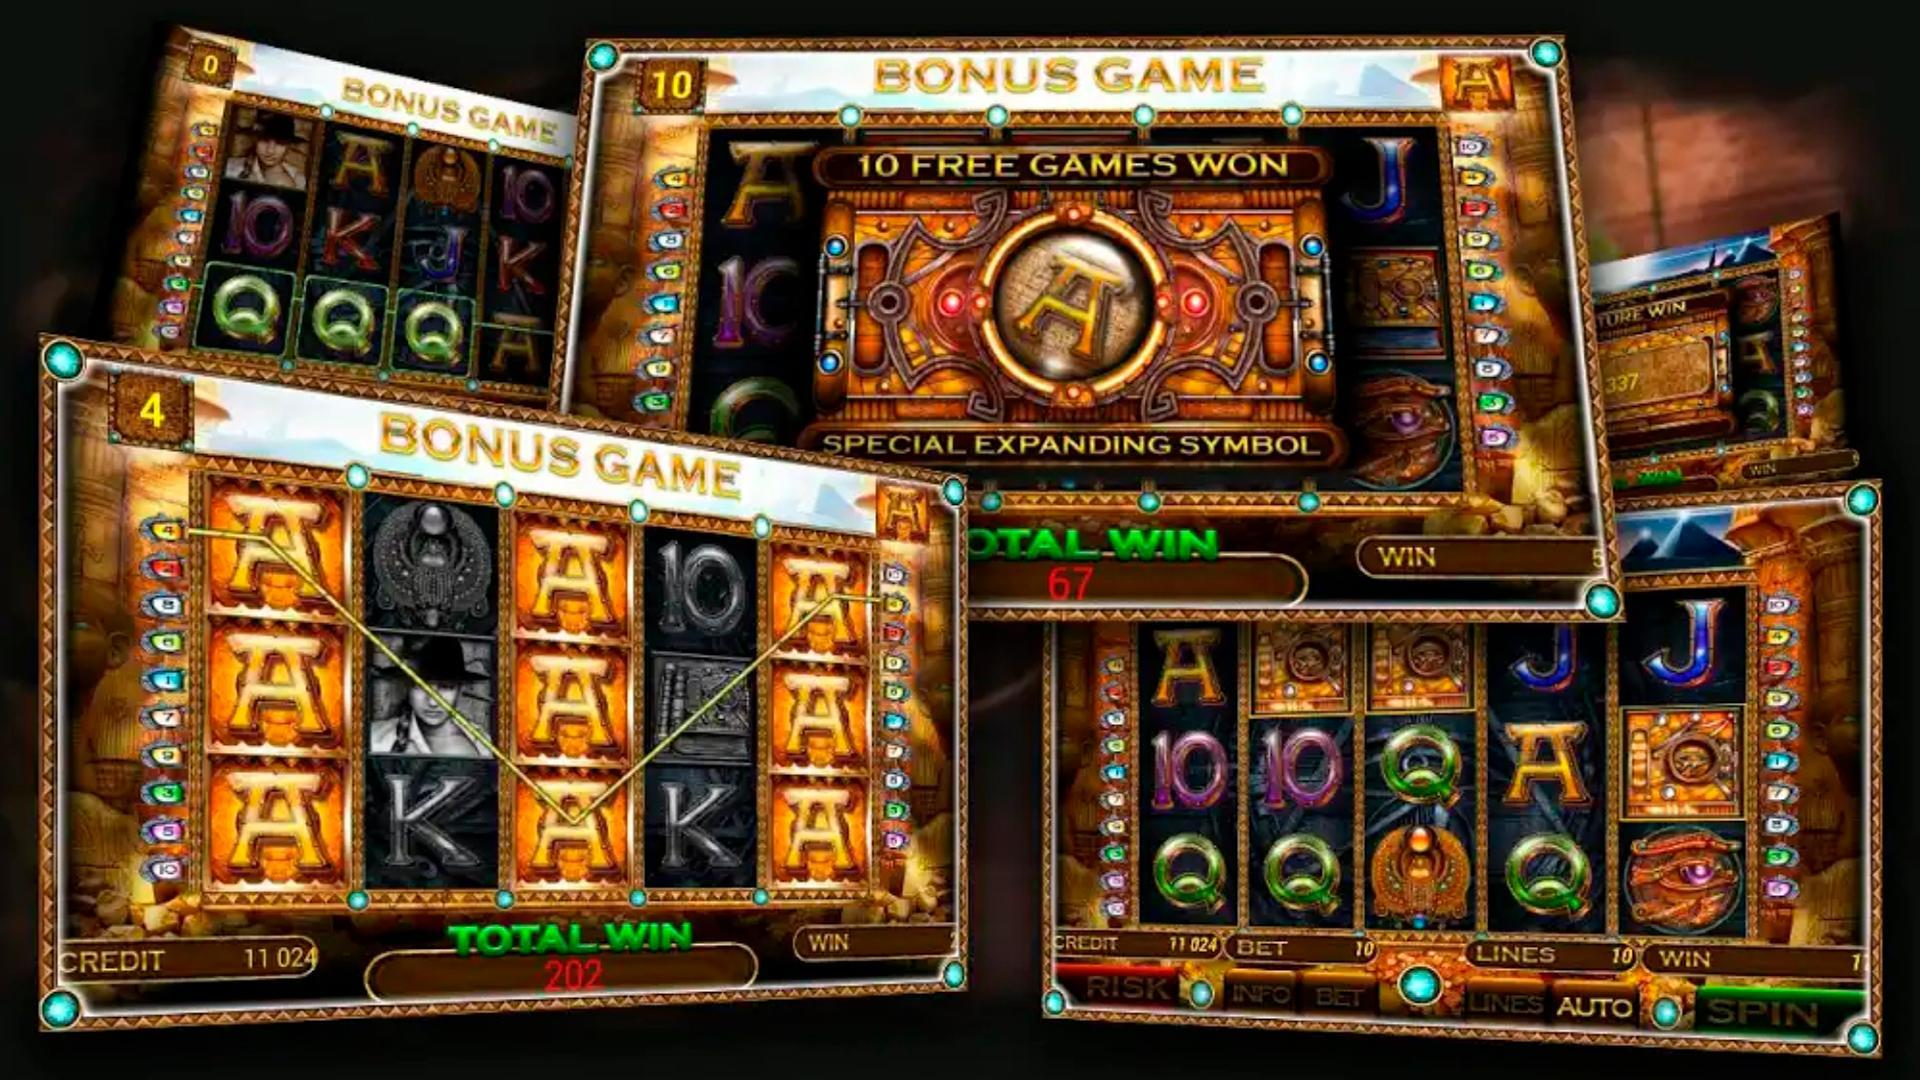 Guide on how to play online slots for beginners